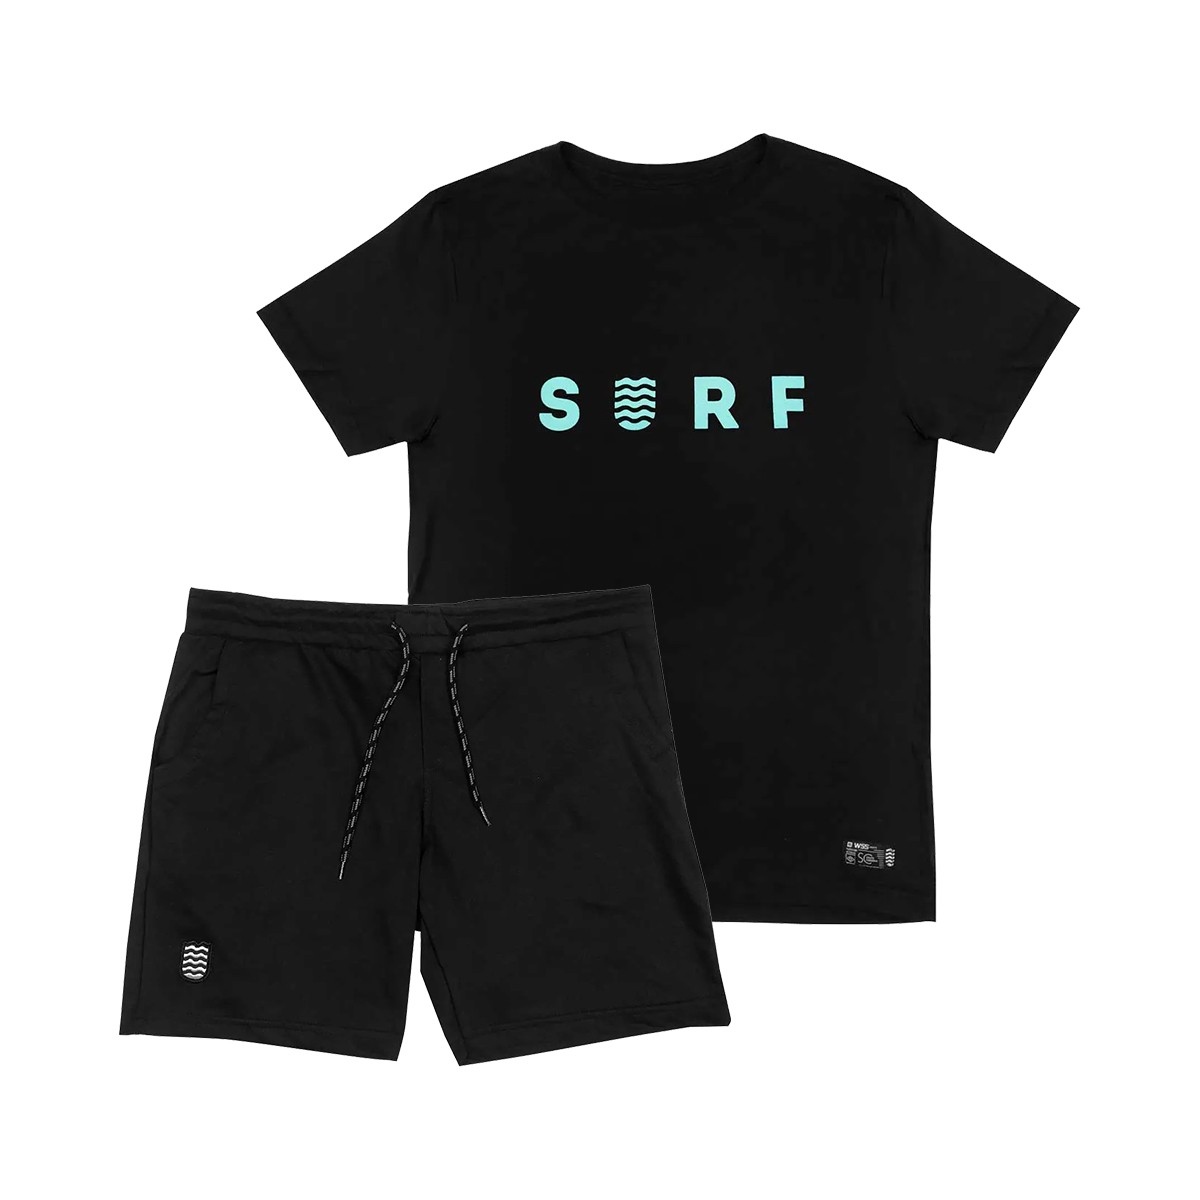 Kit Bermuda Moletom + Camiseta WSS Brasil SURF Black